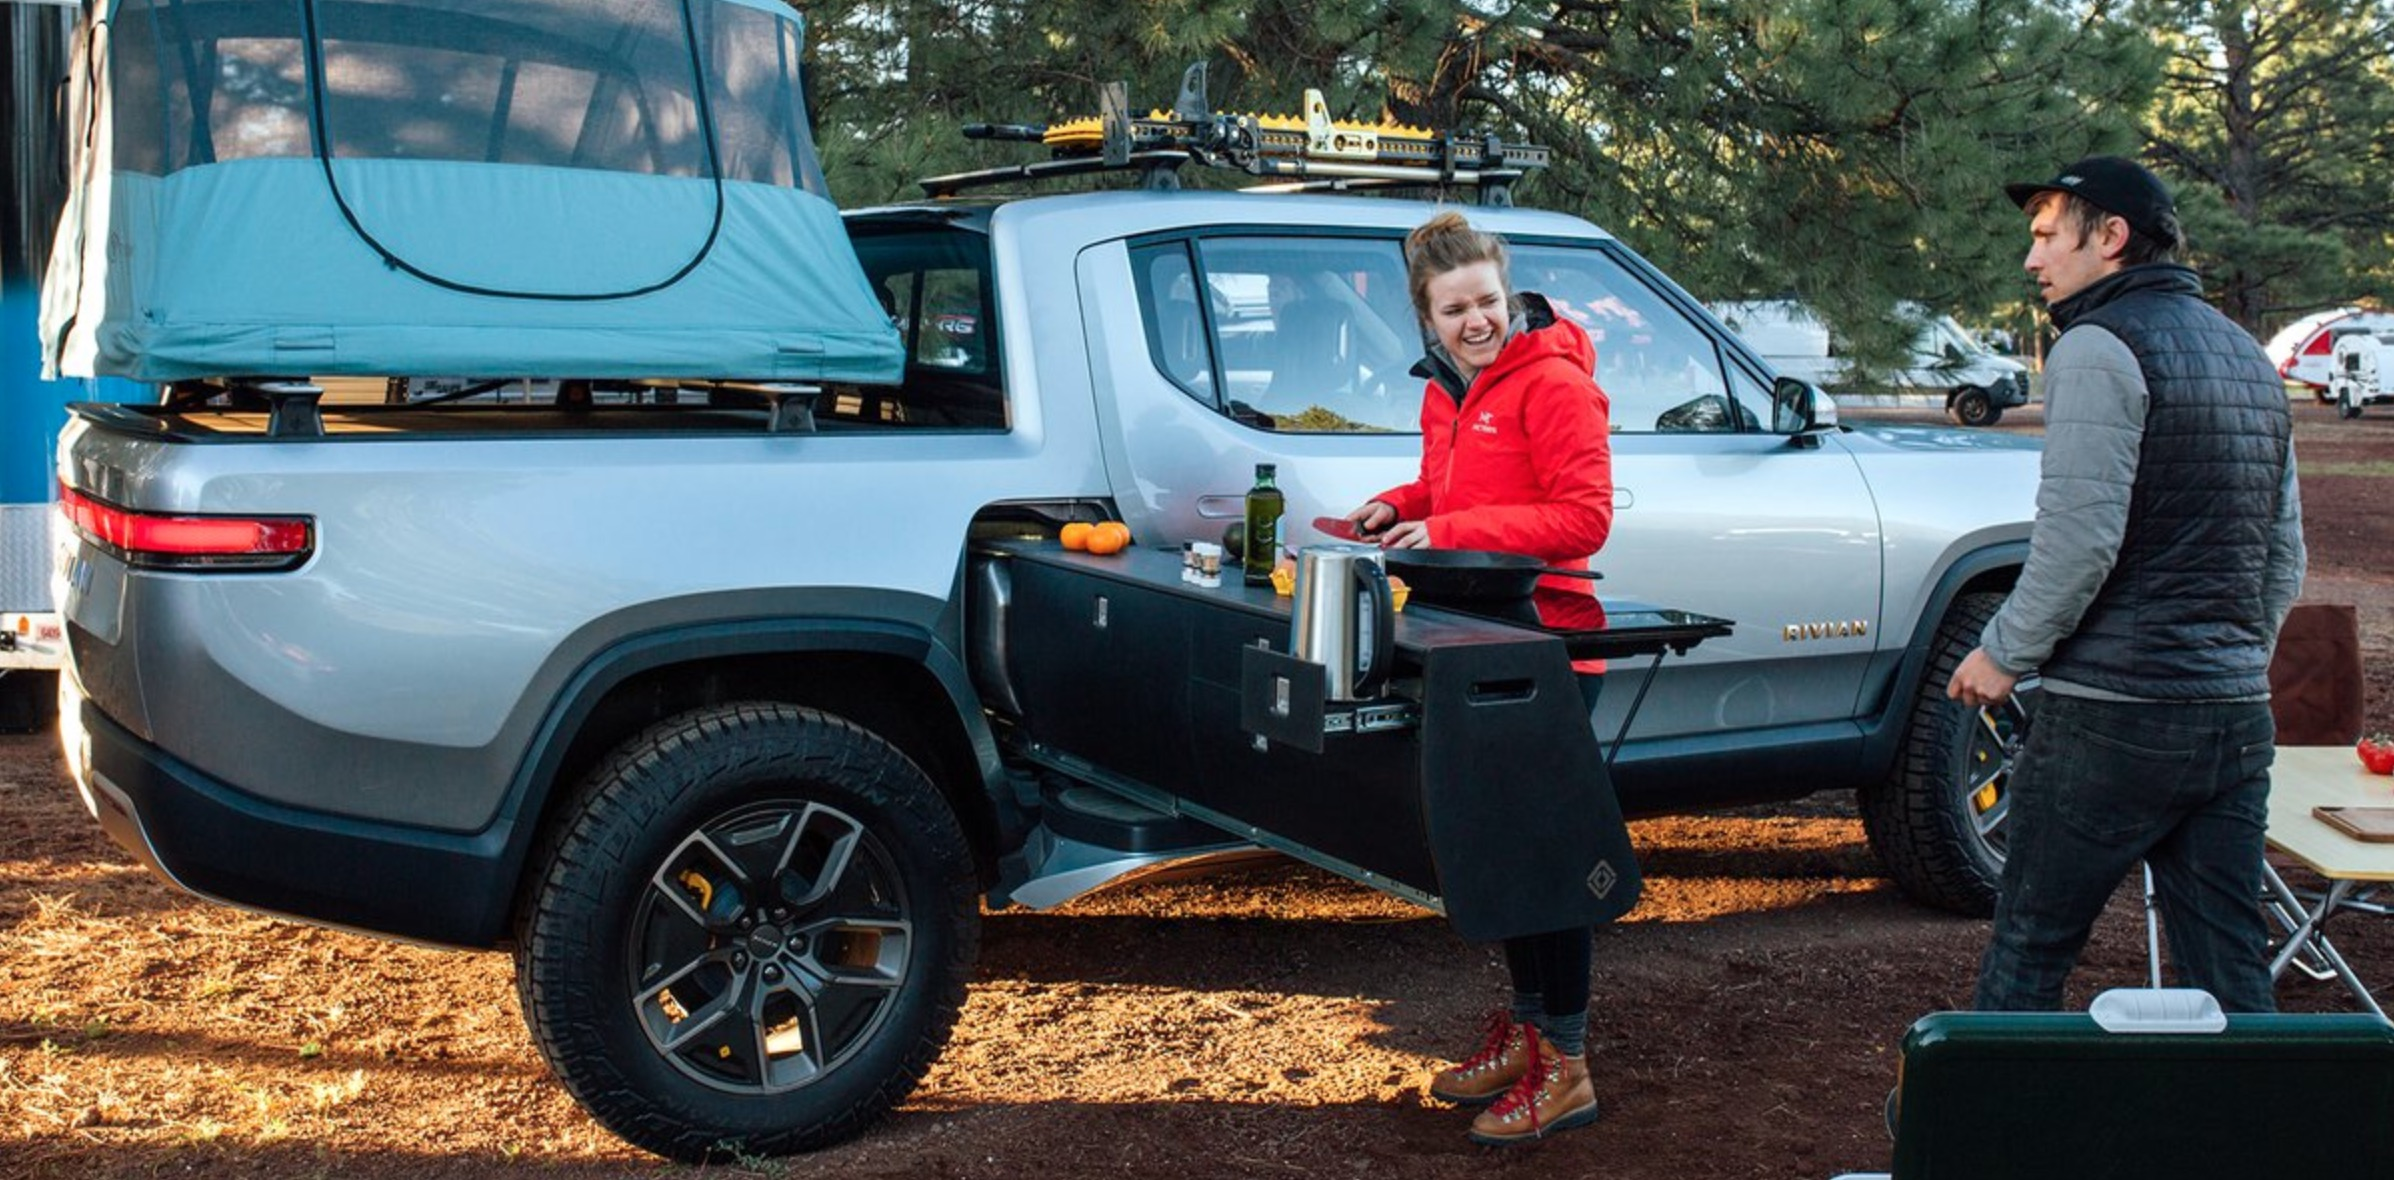 Rivian unveils camper version of its R1T electric pickup truck with incredible features